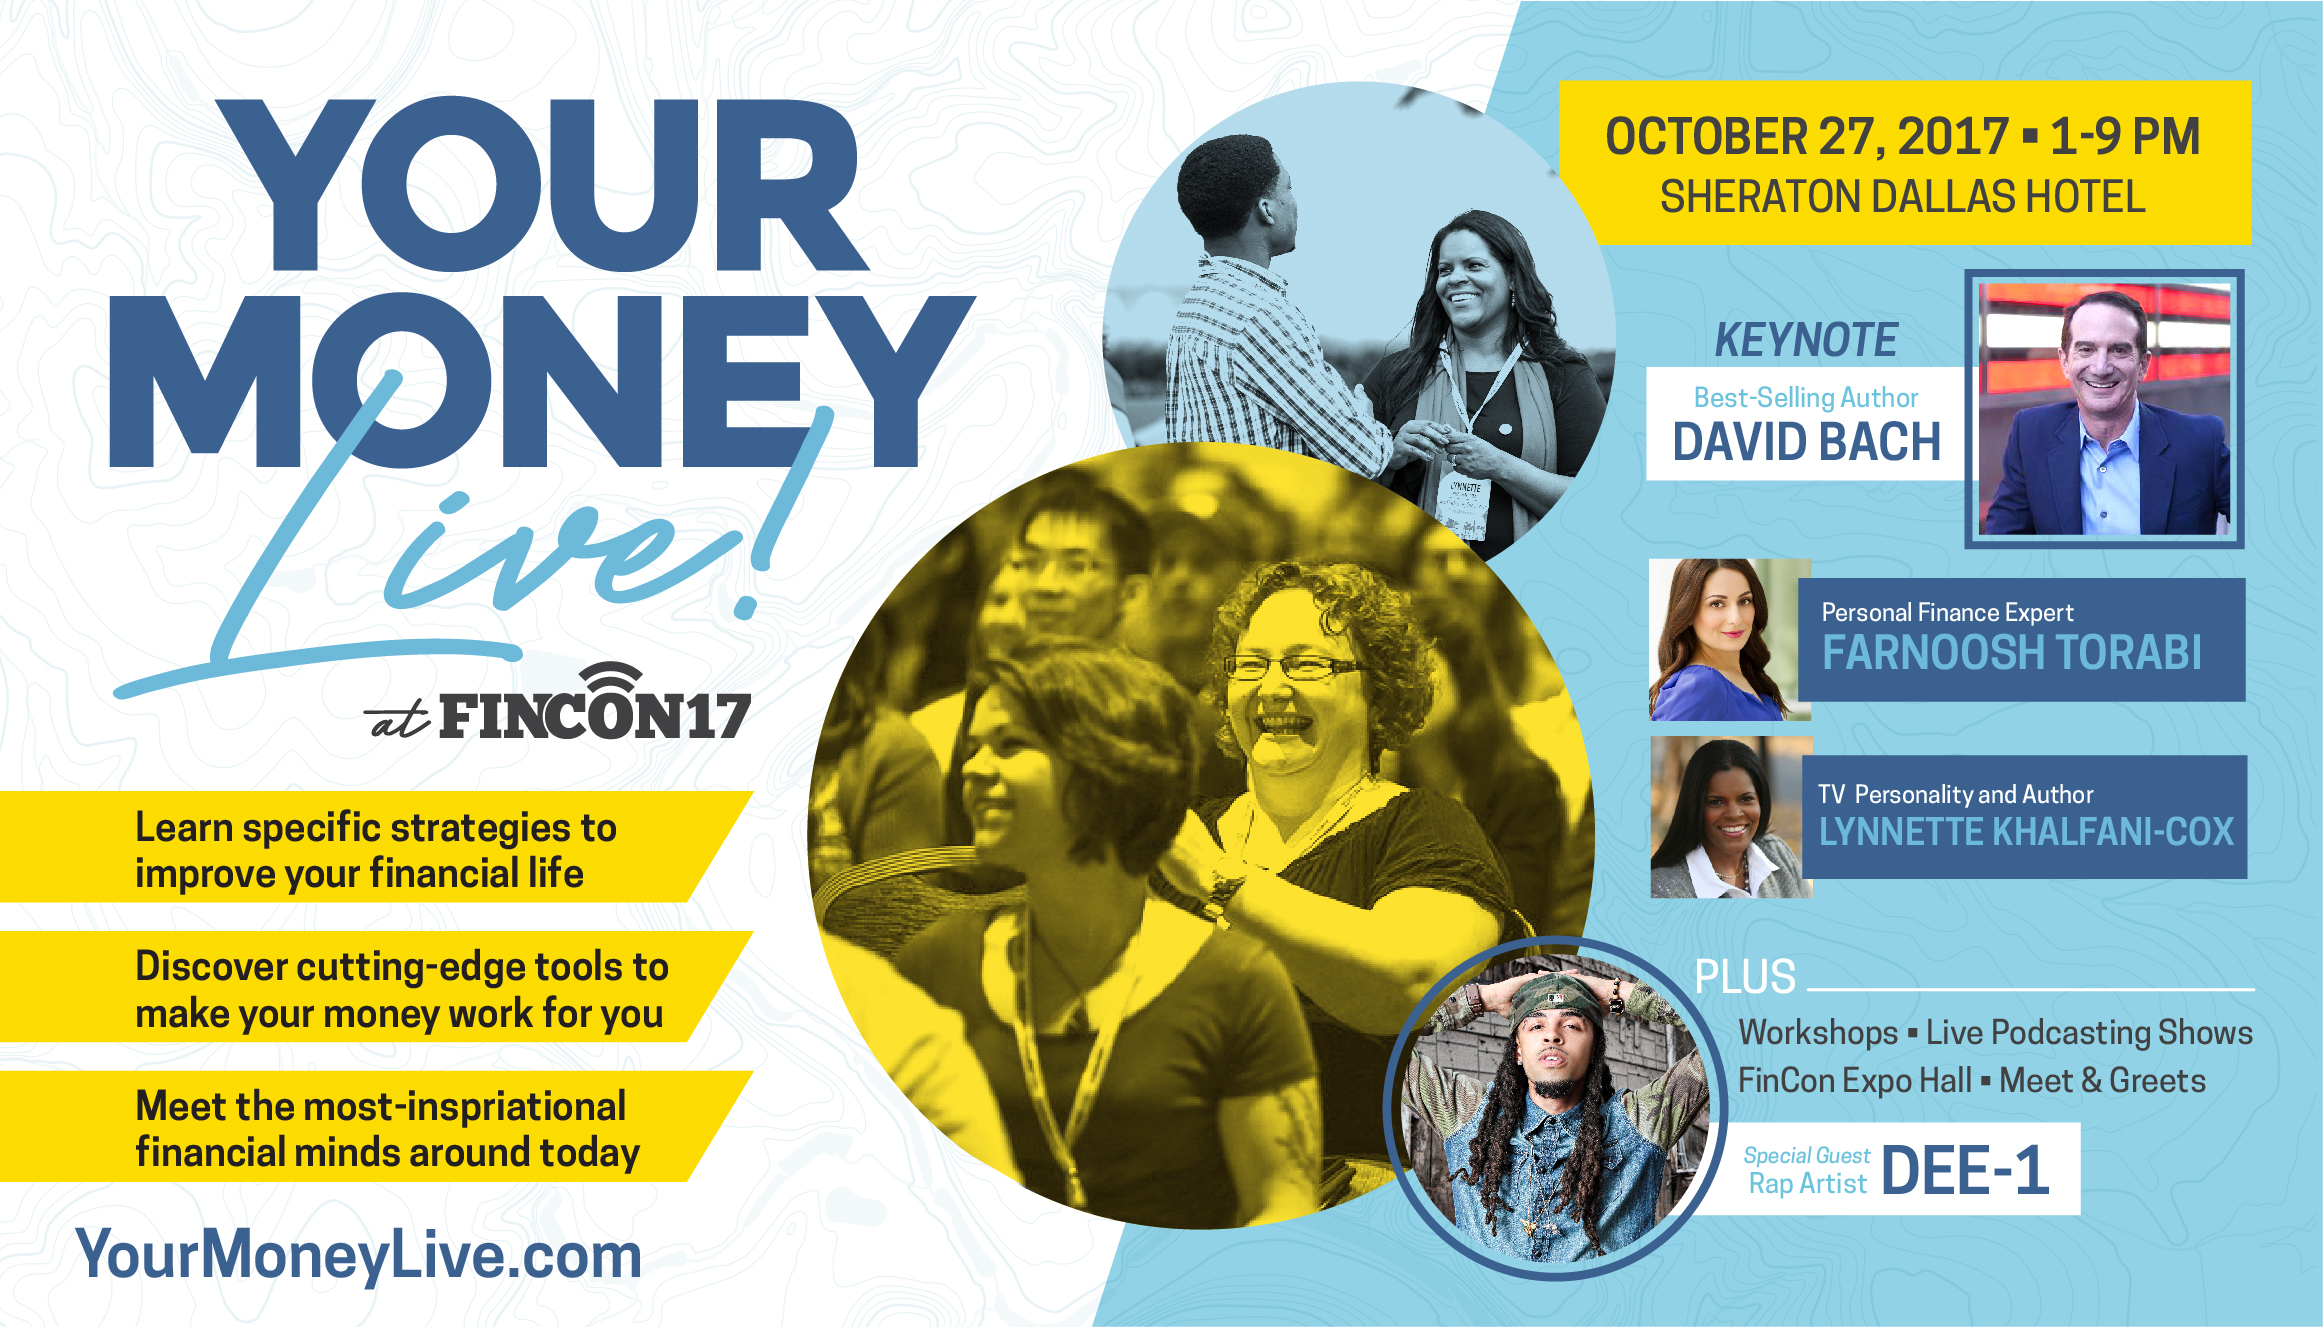 Your Money Live! at FinCon in Dallas October 27 2017